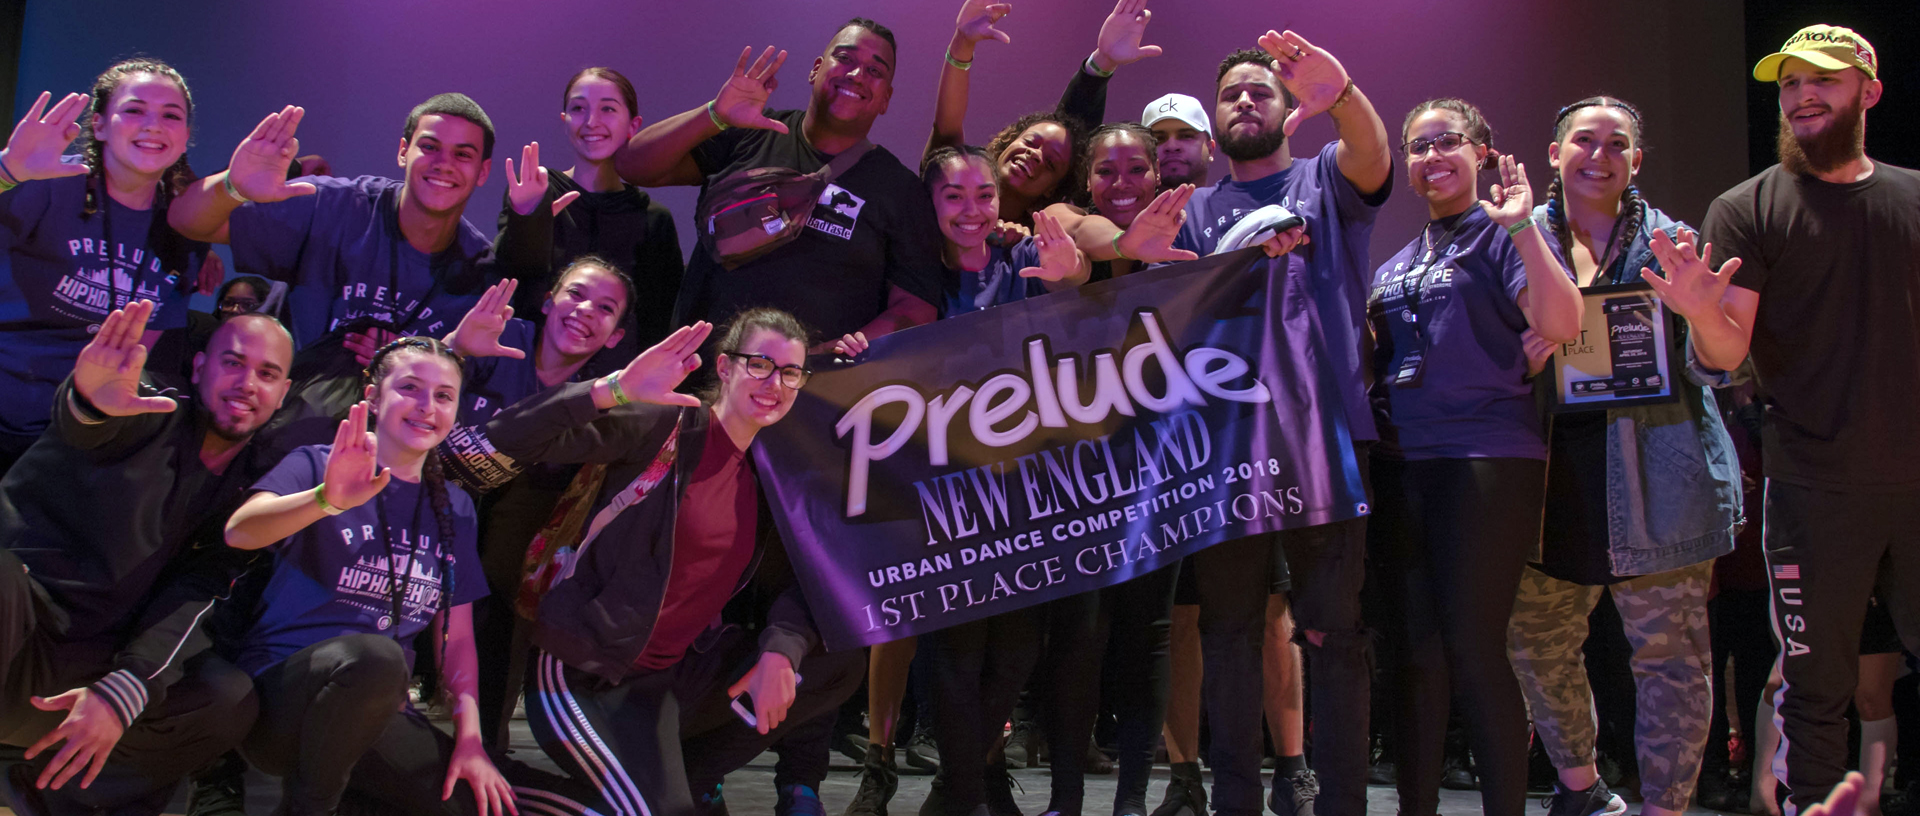 PRELUDE NEW ENGLAND 2018